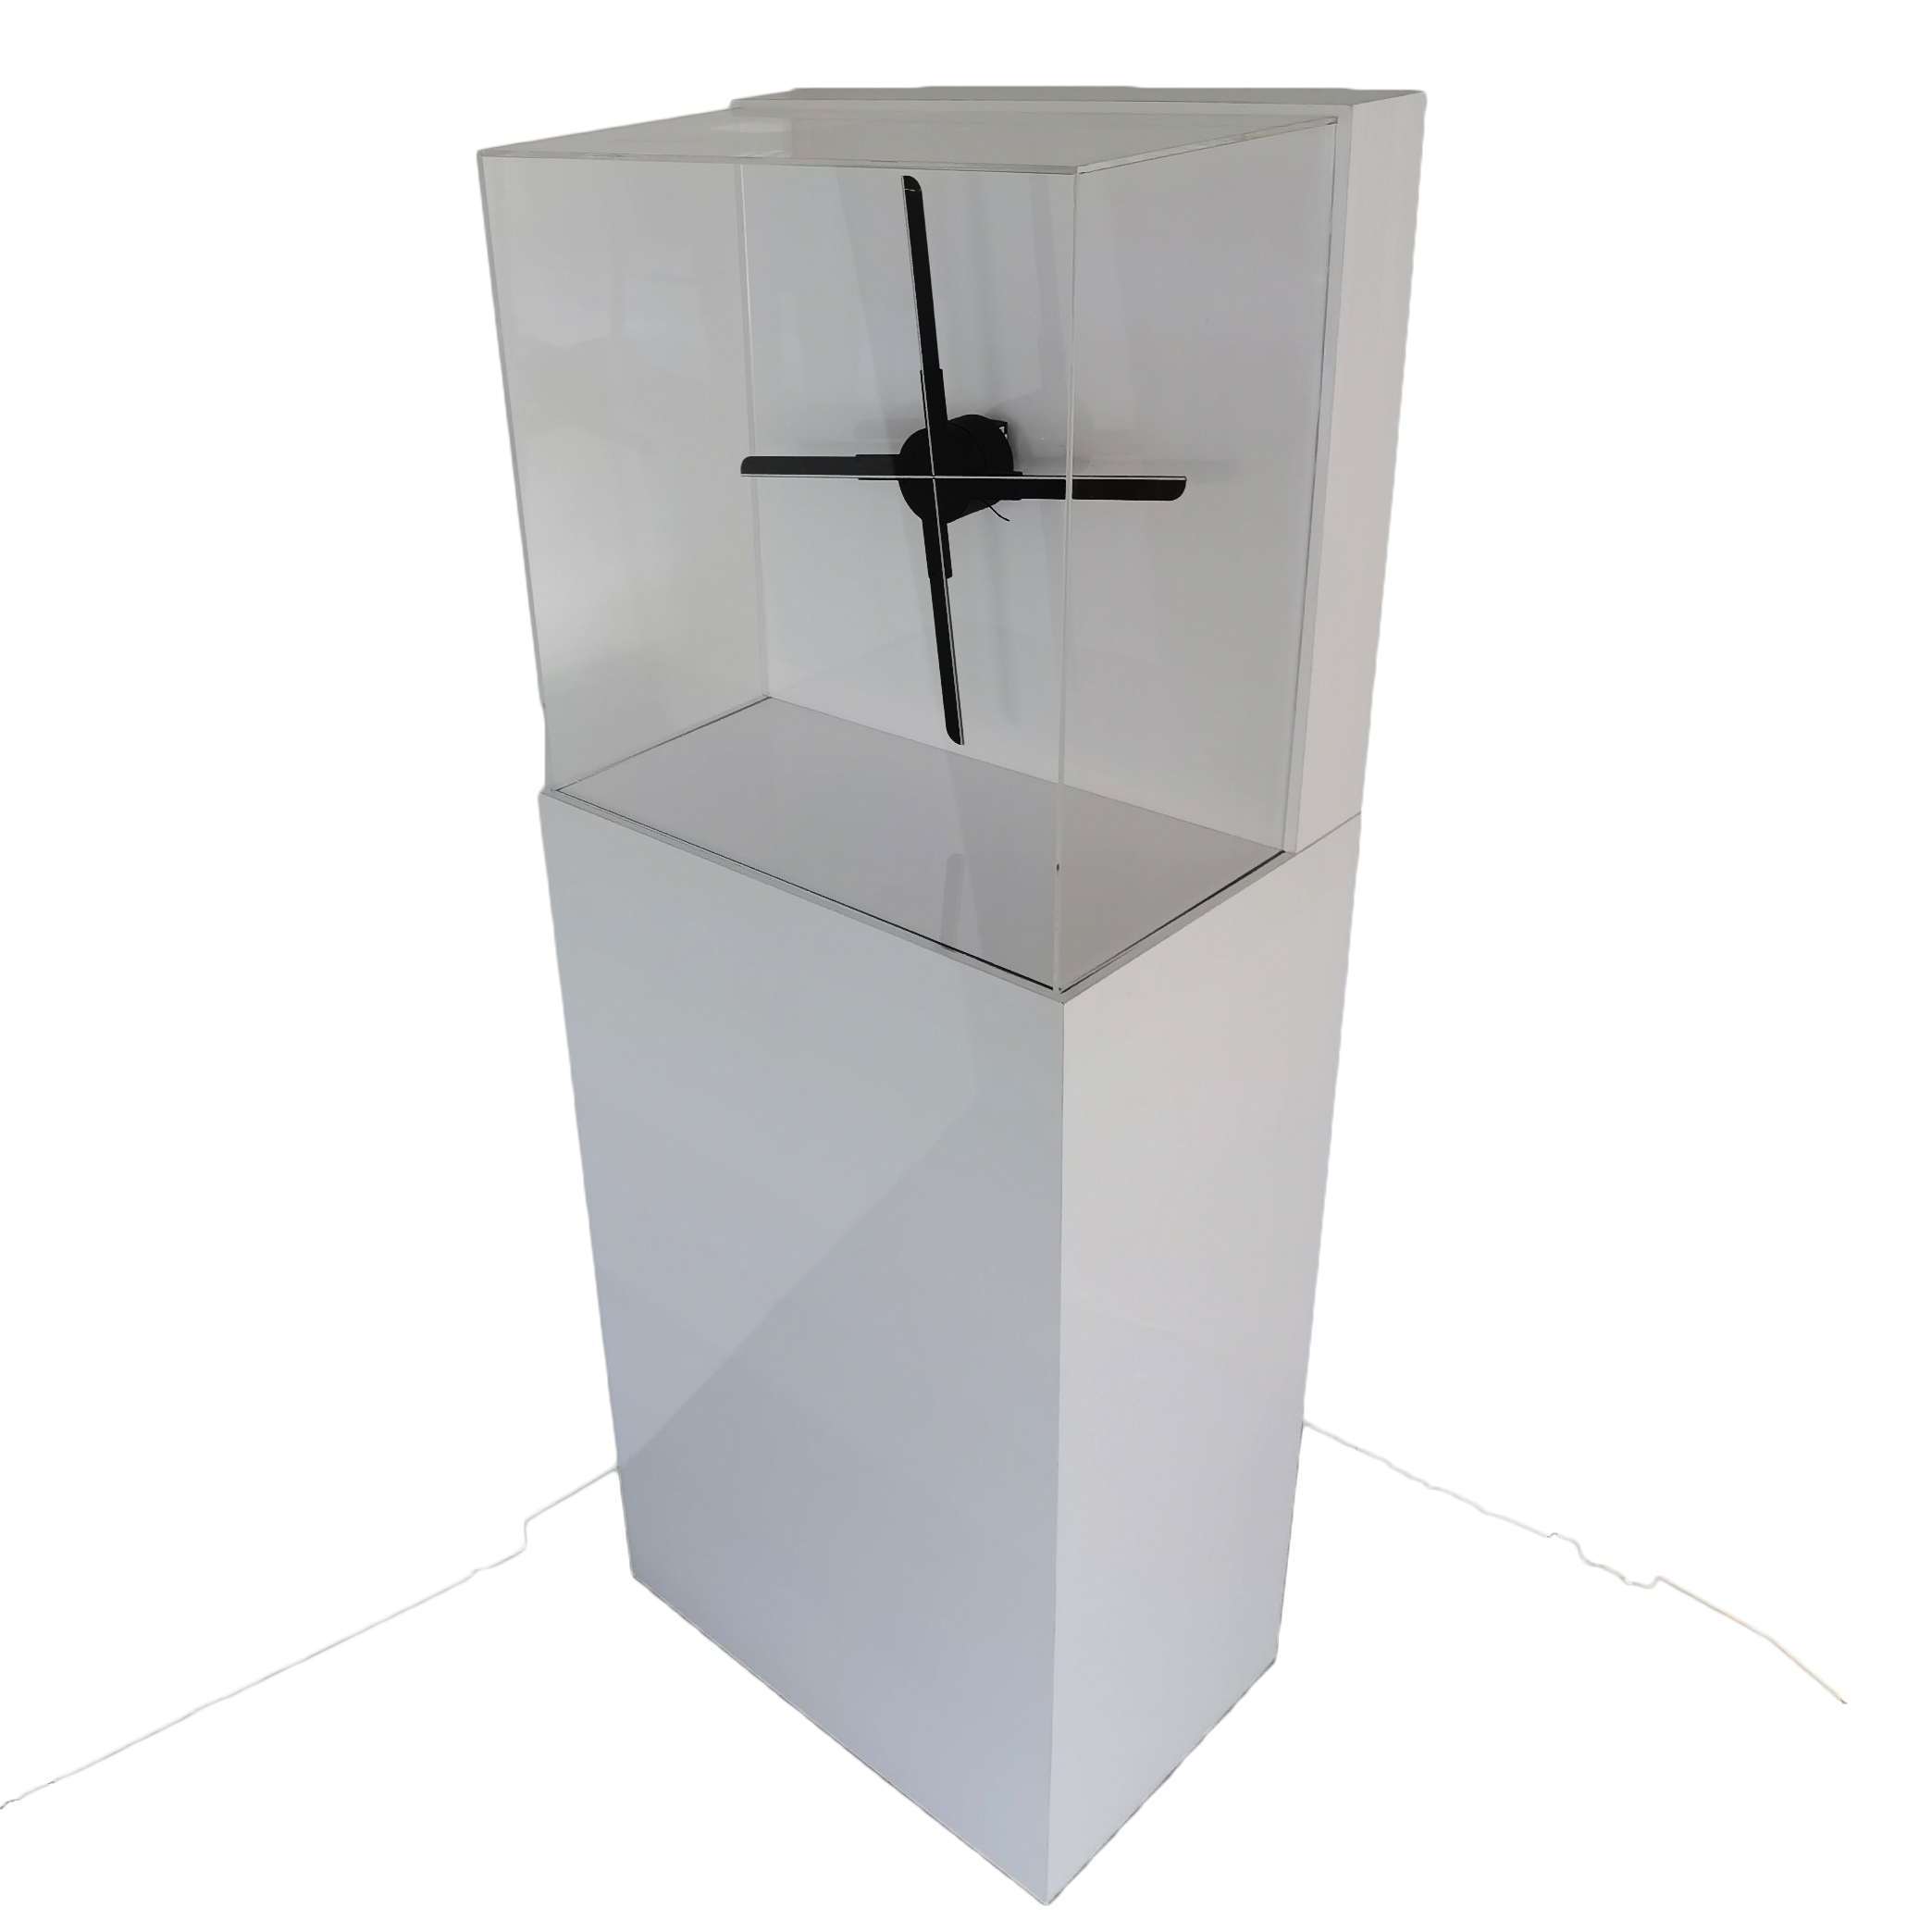 New product new Images can be made as per your request to show your products cigar wig product display stand  showcase